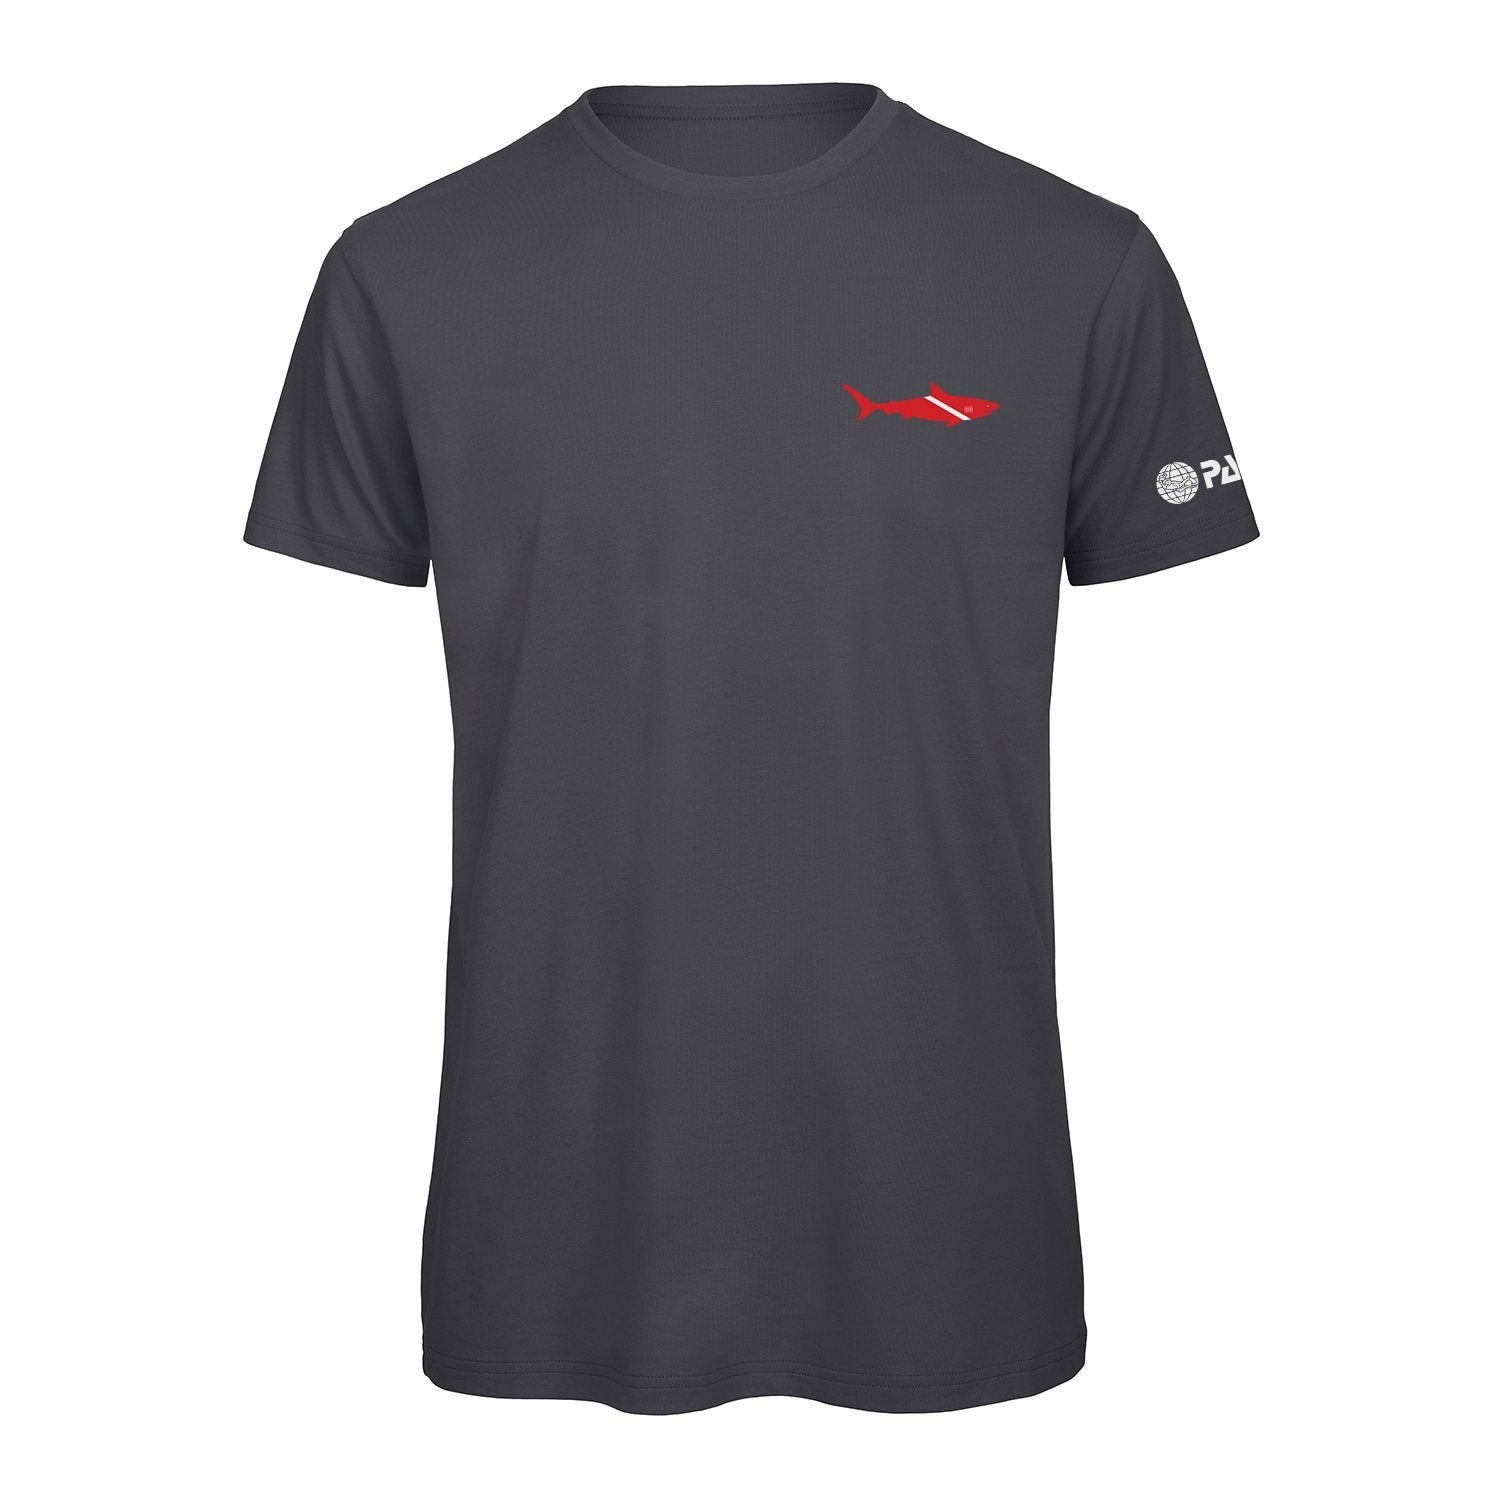 T-Shirt - PADI Dive Flag Shark-Dark Grey